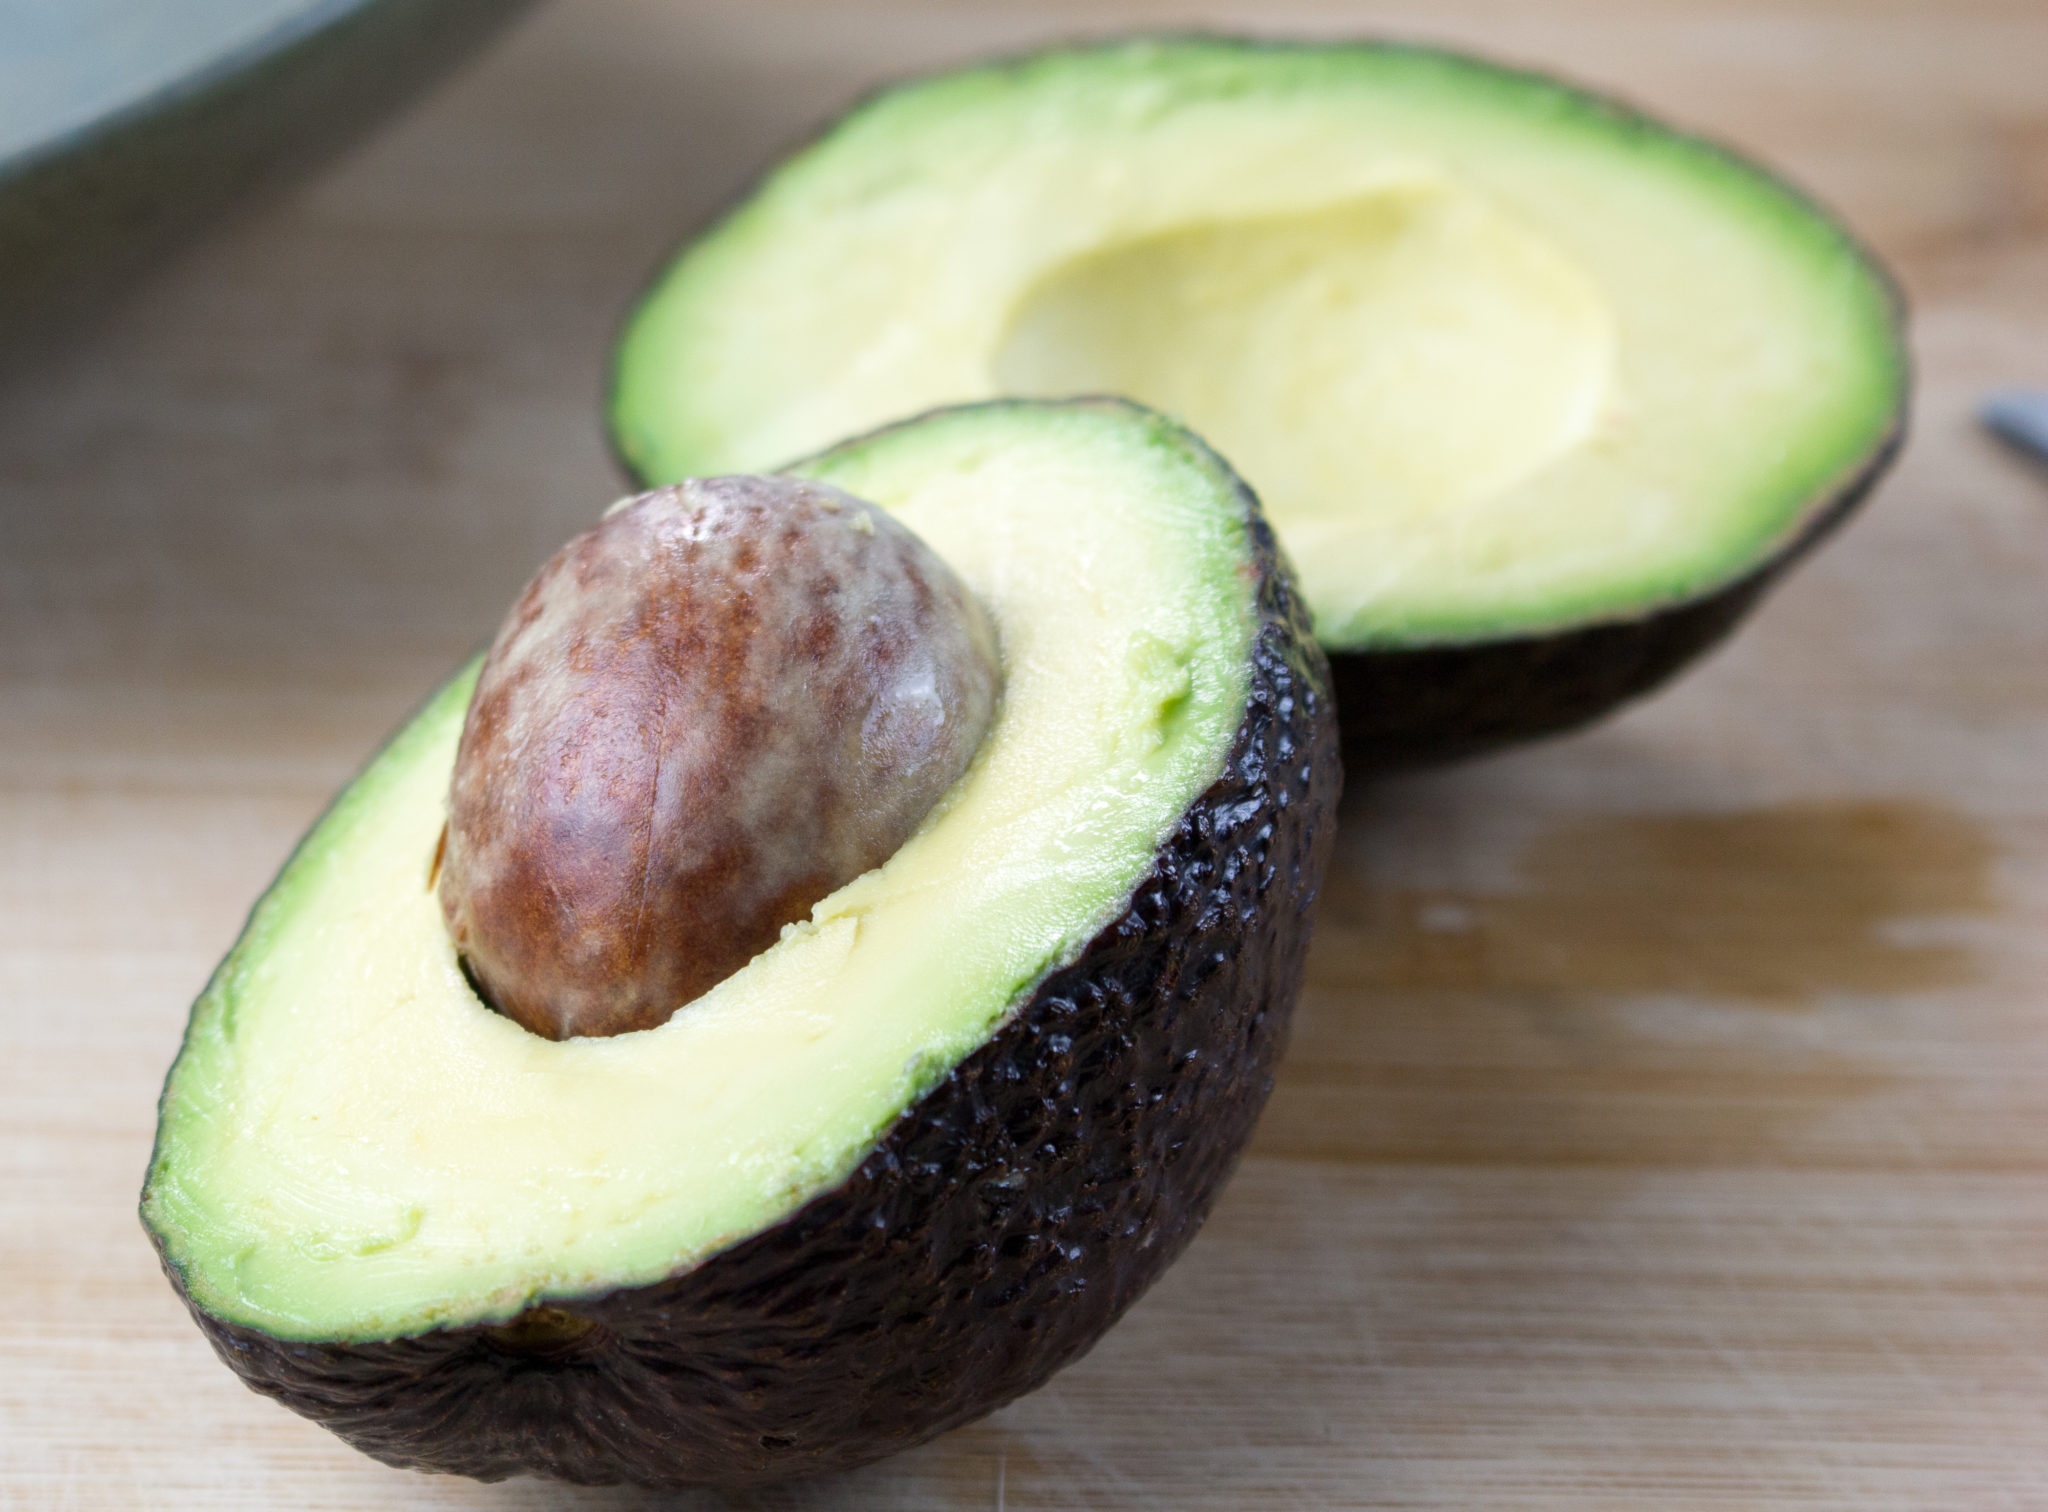 Don't miss out on avocados for breakfast, lunch, dinner and filling snack. Whole food fats are the best alternatives to processed oils. www.veganglutenfreelife.com/avocado-a-healthy-fat/